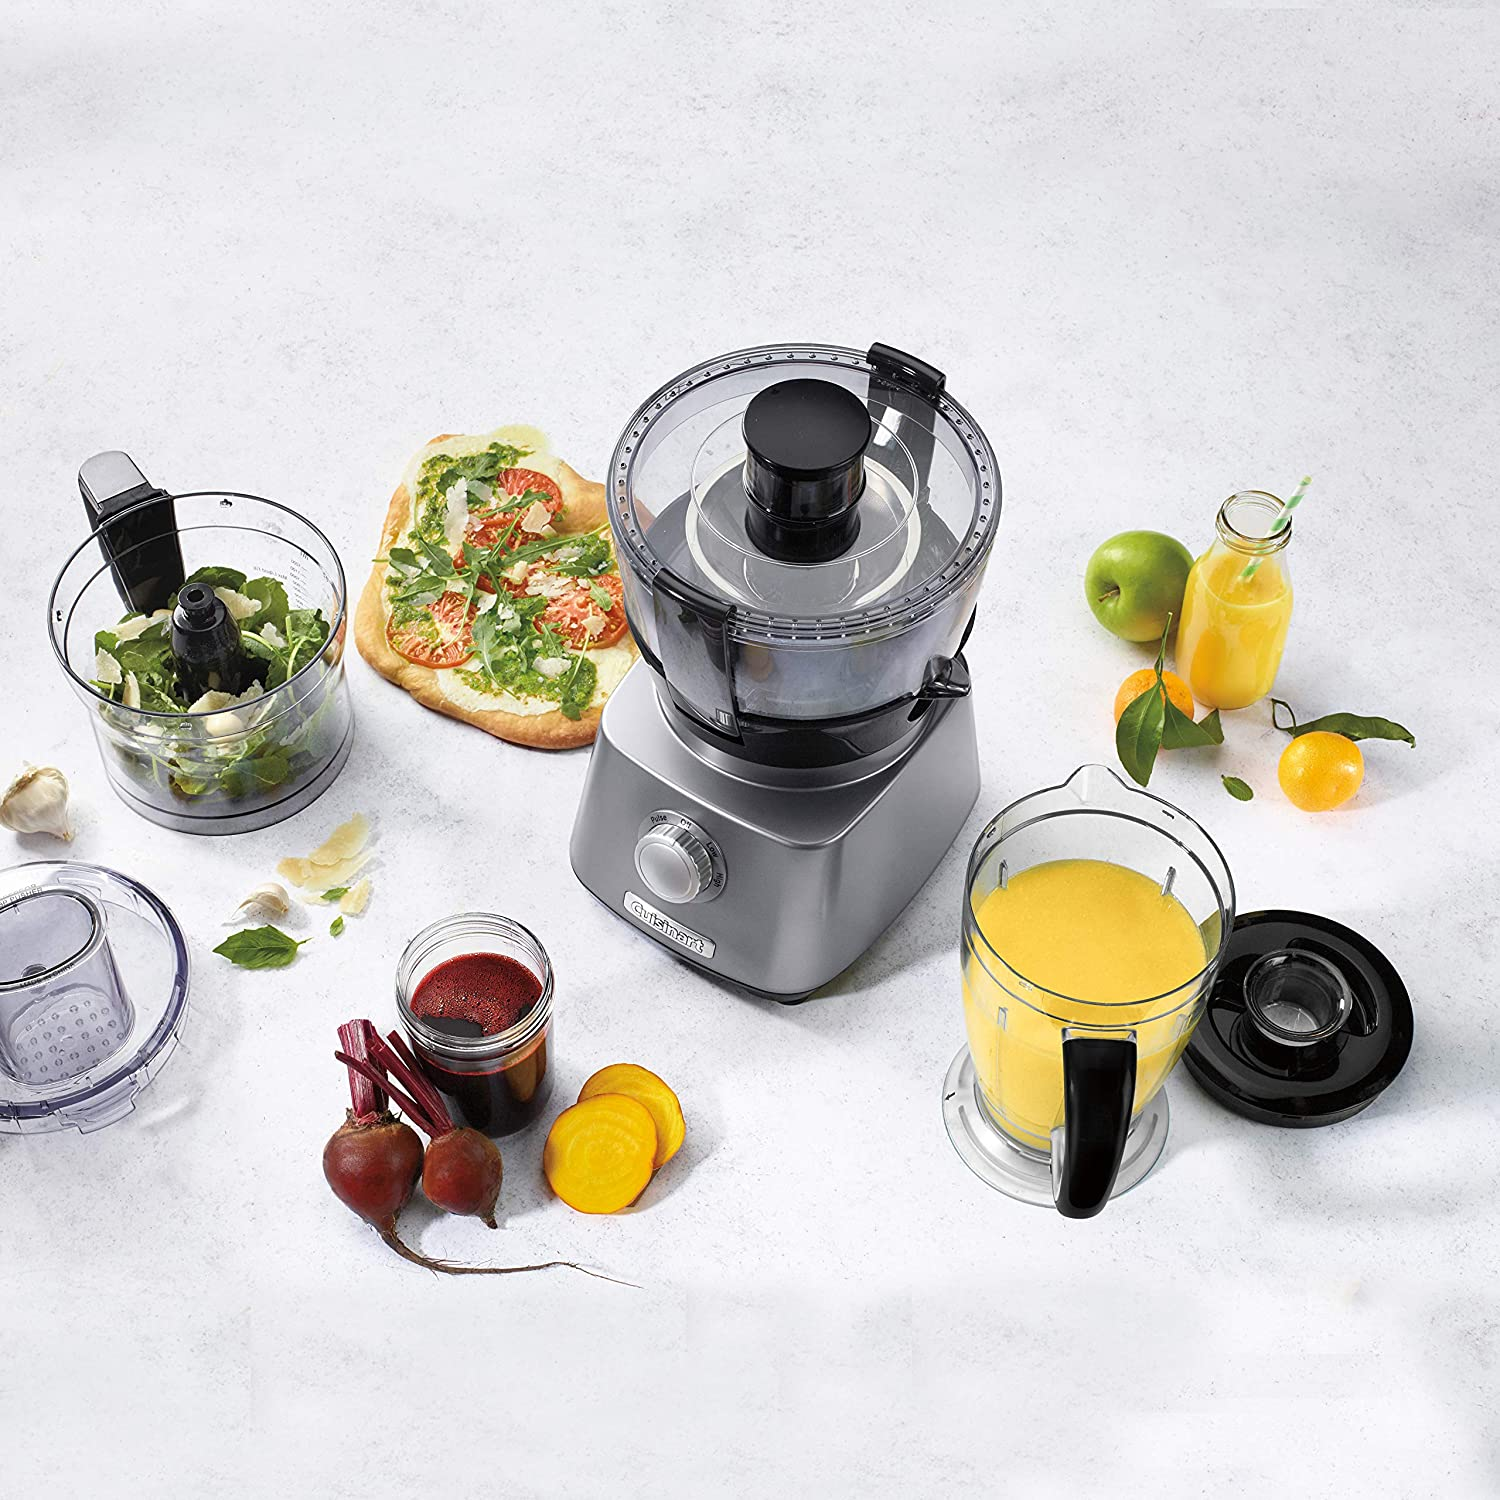 Cuisinart 3-in-1 Multifunctional Kitchen Centre CFP-800C 8-cup